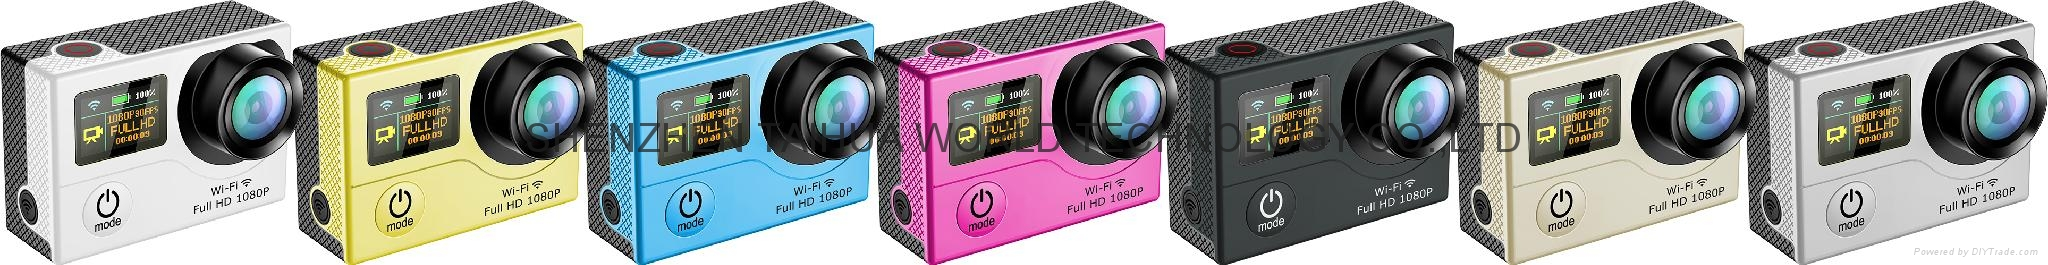 WiFi  30M waterproof  G3  sports camera  GOPRO dual display screen 8